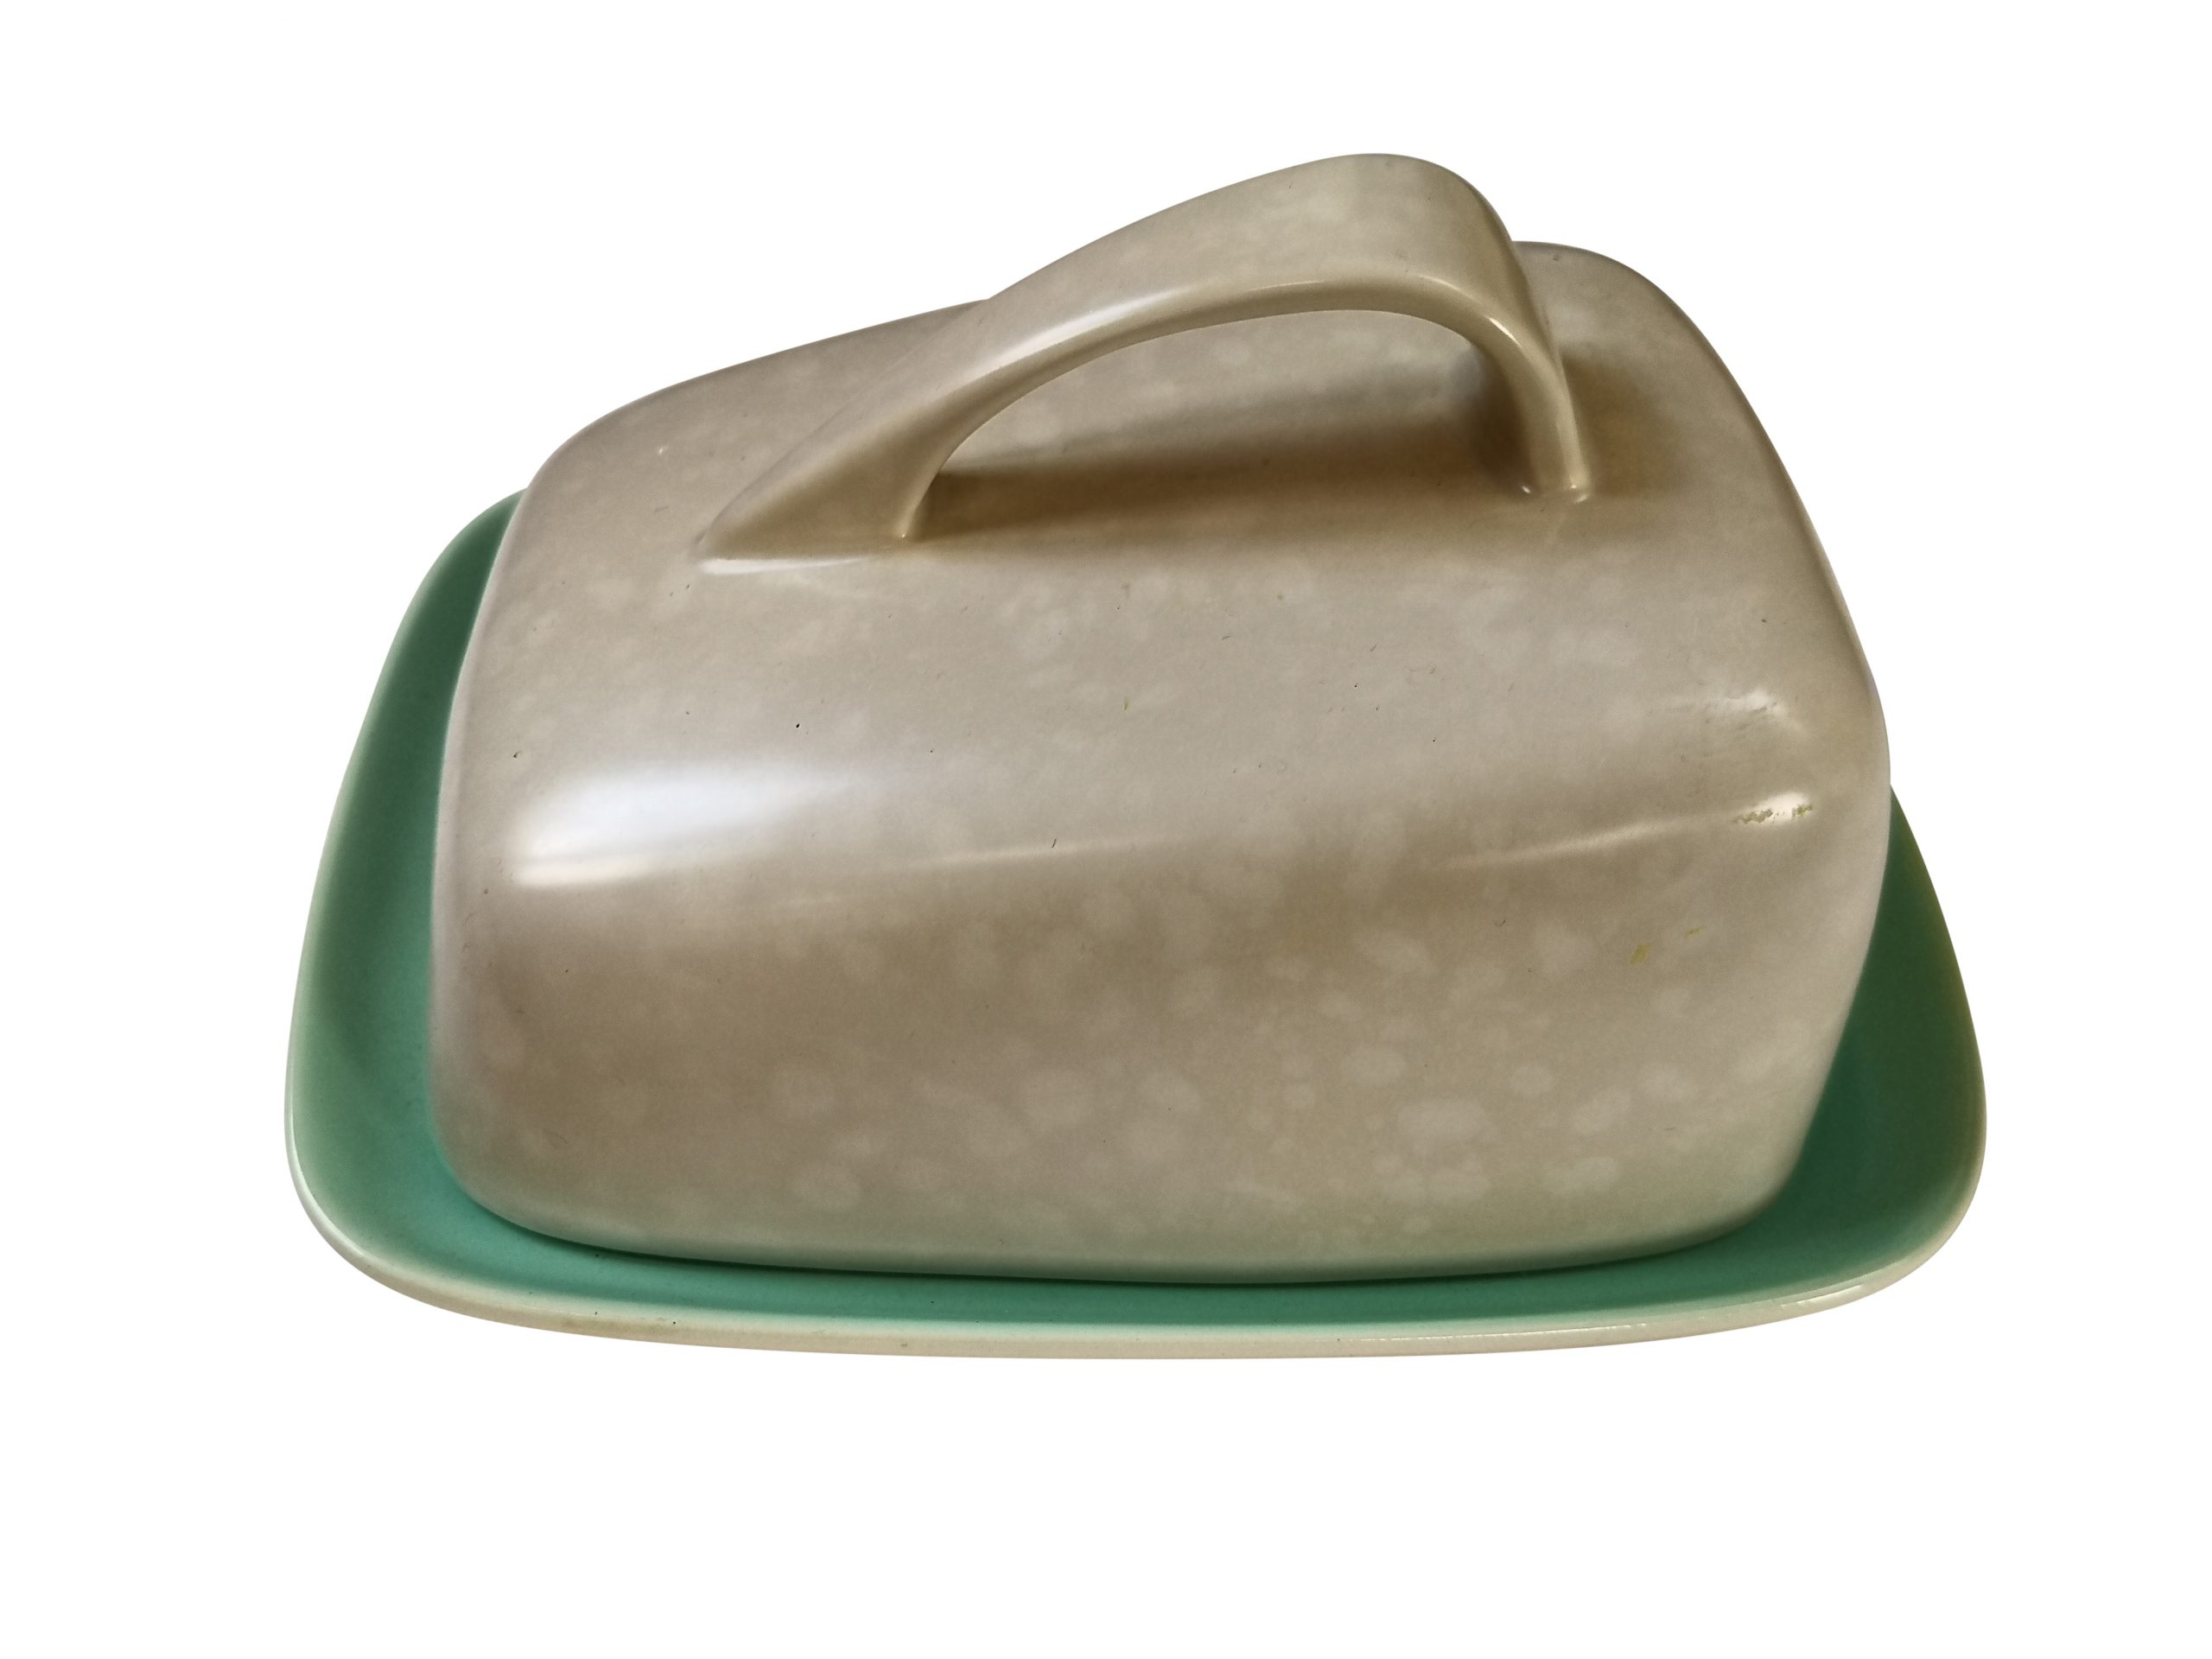 Poole pottery mid-century twin tone butter dish from Antik Seramika